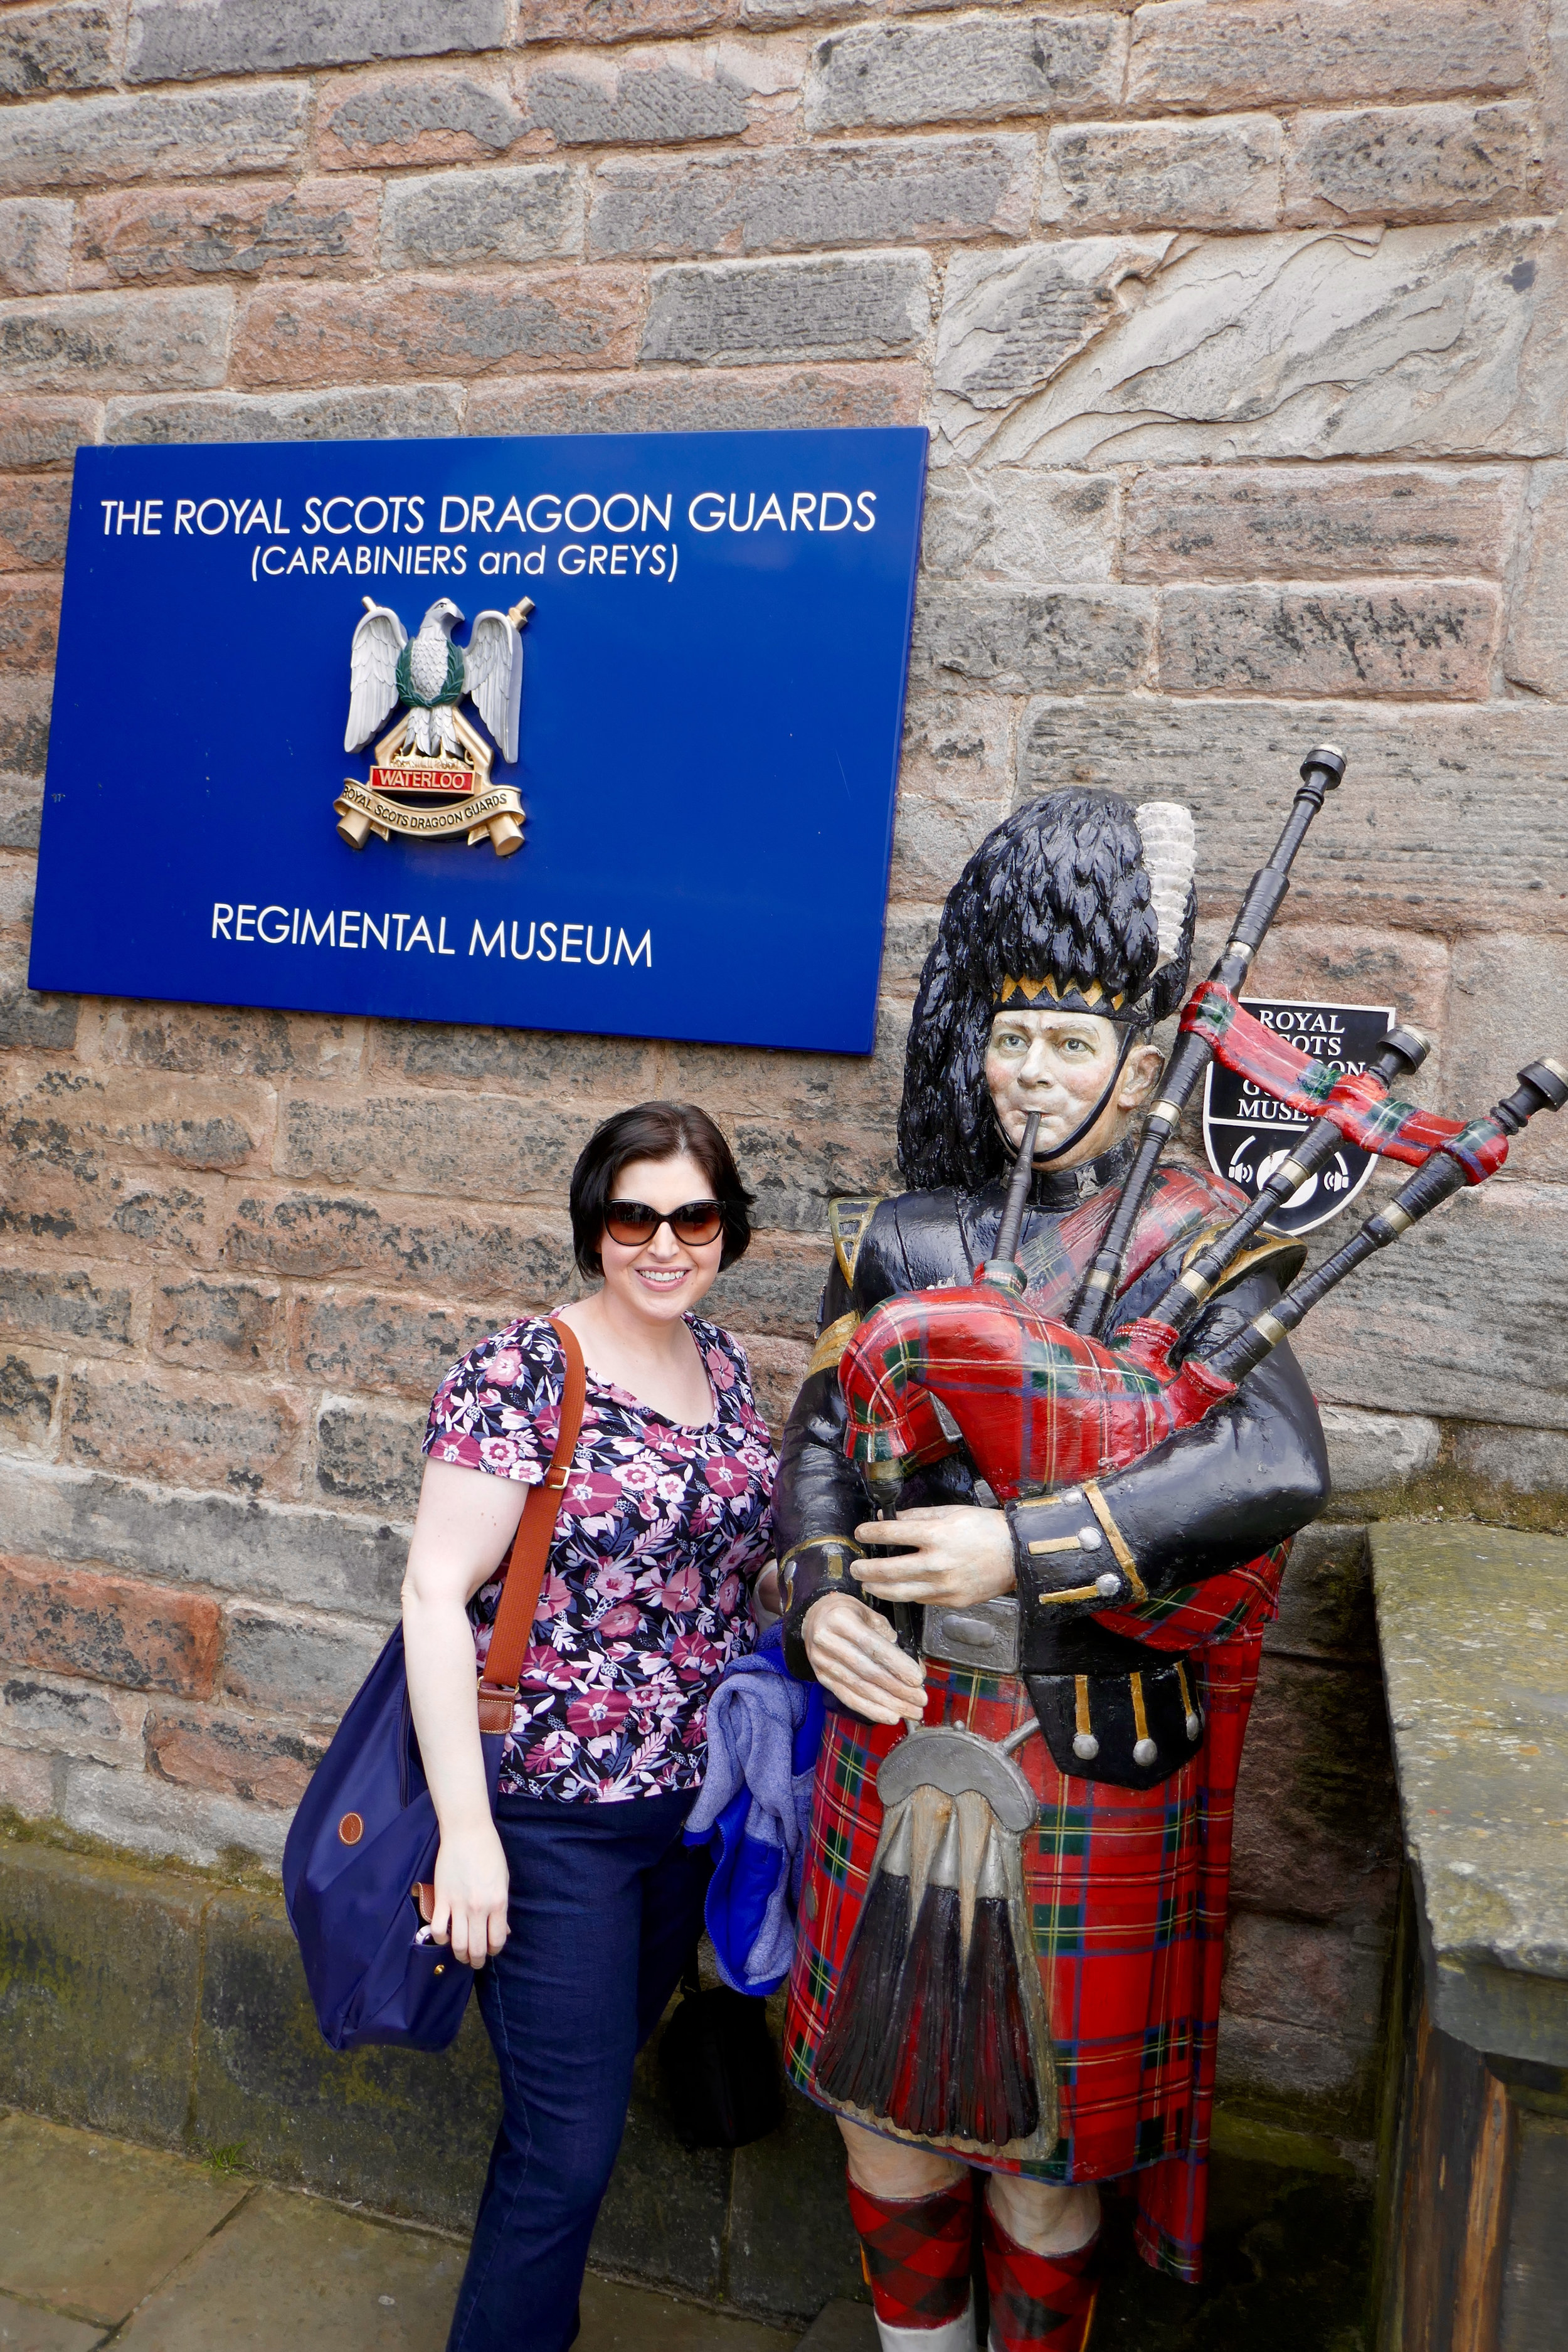 With the statue of the Scottish soldier at Edinburgh Castle